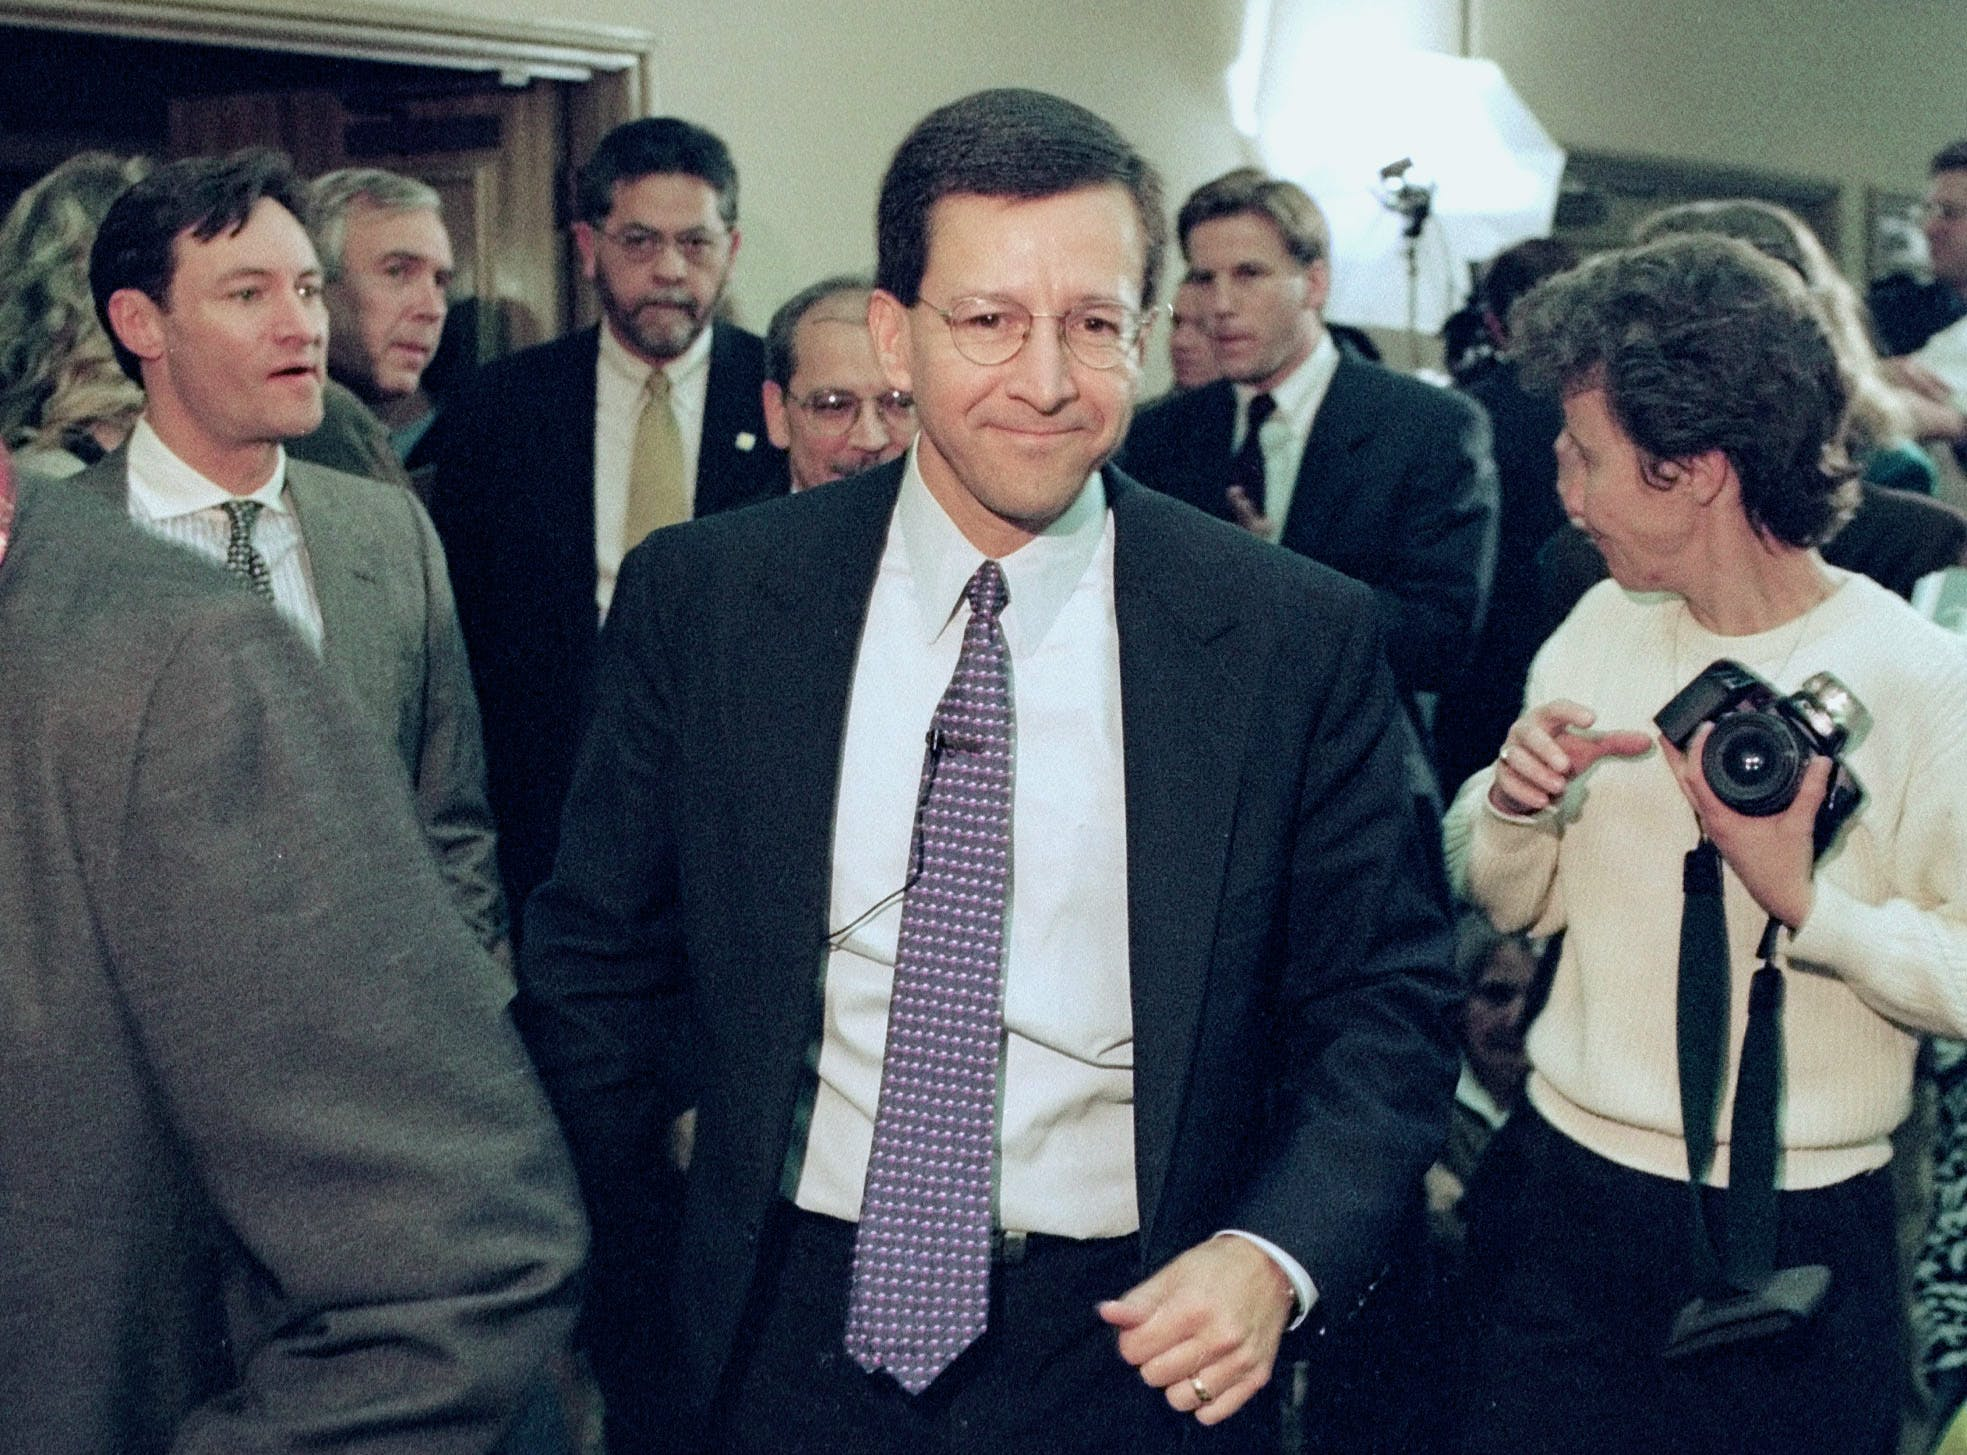 ** FILE ** Dan Morales, center, then Texas Attorney General, shown in this file photo from Jan. 16, 1998, moves through a crowd before his news conference to announce the award of $ 15.32 billion to the state from the tobacco industry. Former Texas Attorney General Dan Morales and a onetime law associate were indicted Thursday, March 6, 2003, on federal charges of trying to fraudulently obtain hundreds of millions of dollars in attorney fees from a state settlement with tobacco companies.  Both Morales and Marc Murr, a former associate and personal friend, were expected to turn themselves in Friday, authorities said. (AP Photo/Harry Cabluck, File)